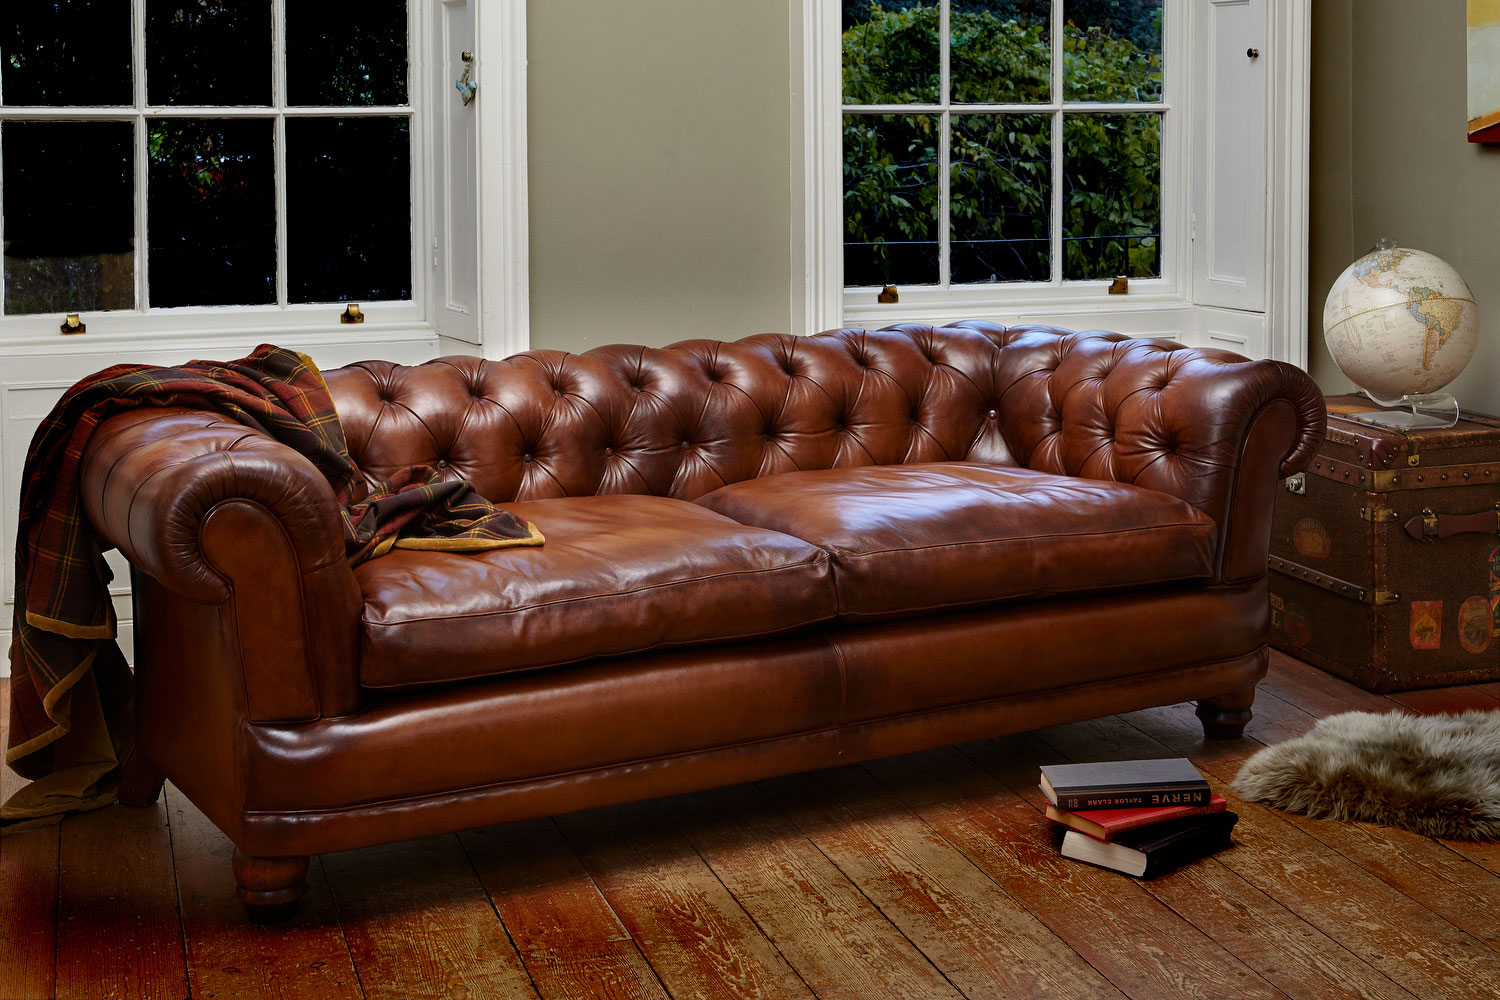 cairness chesterfield sofa range